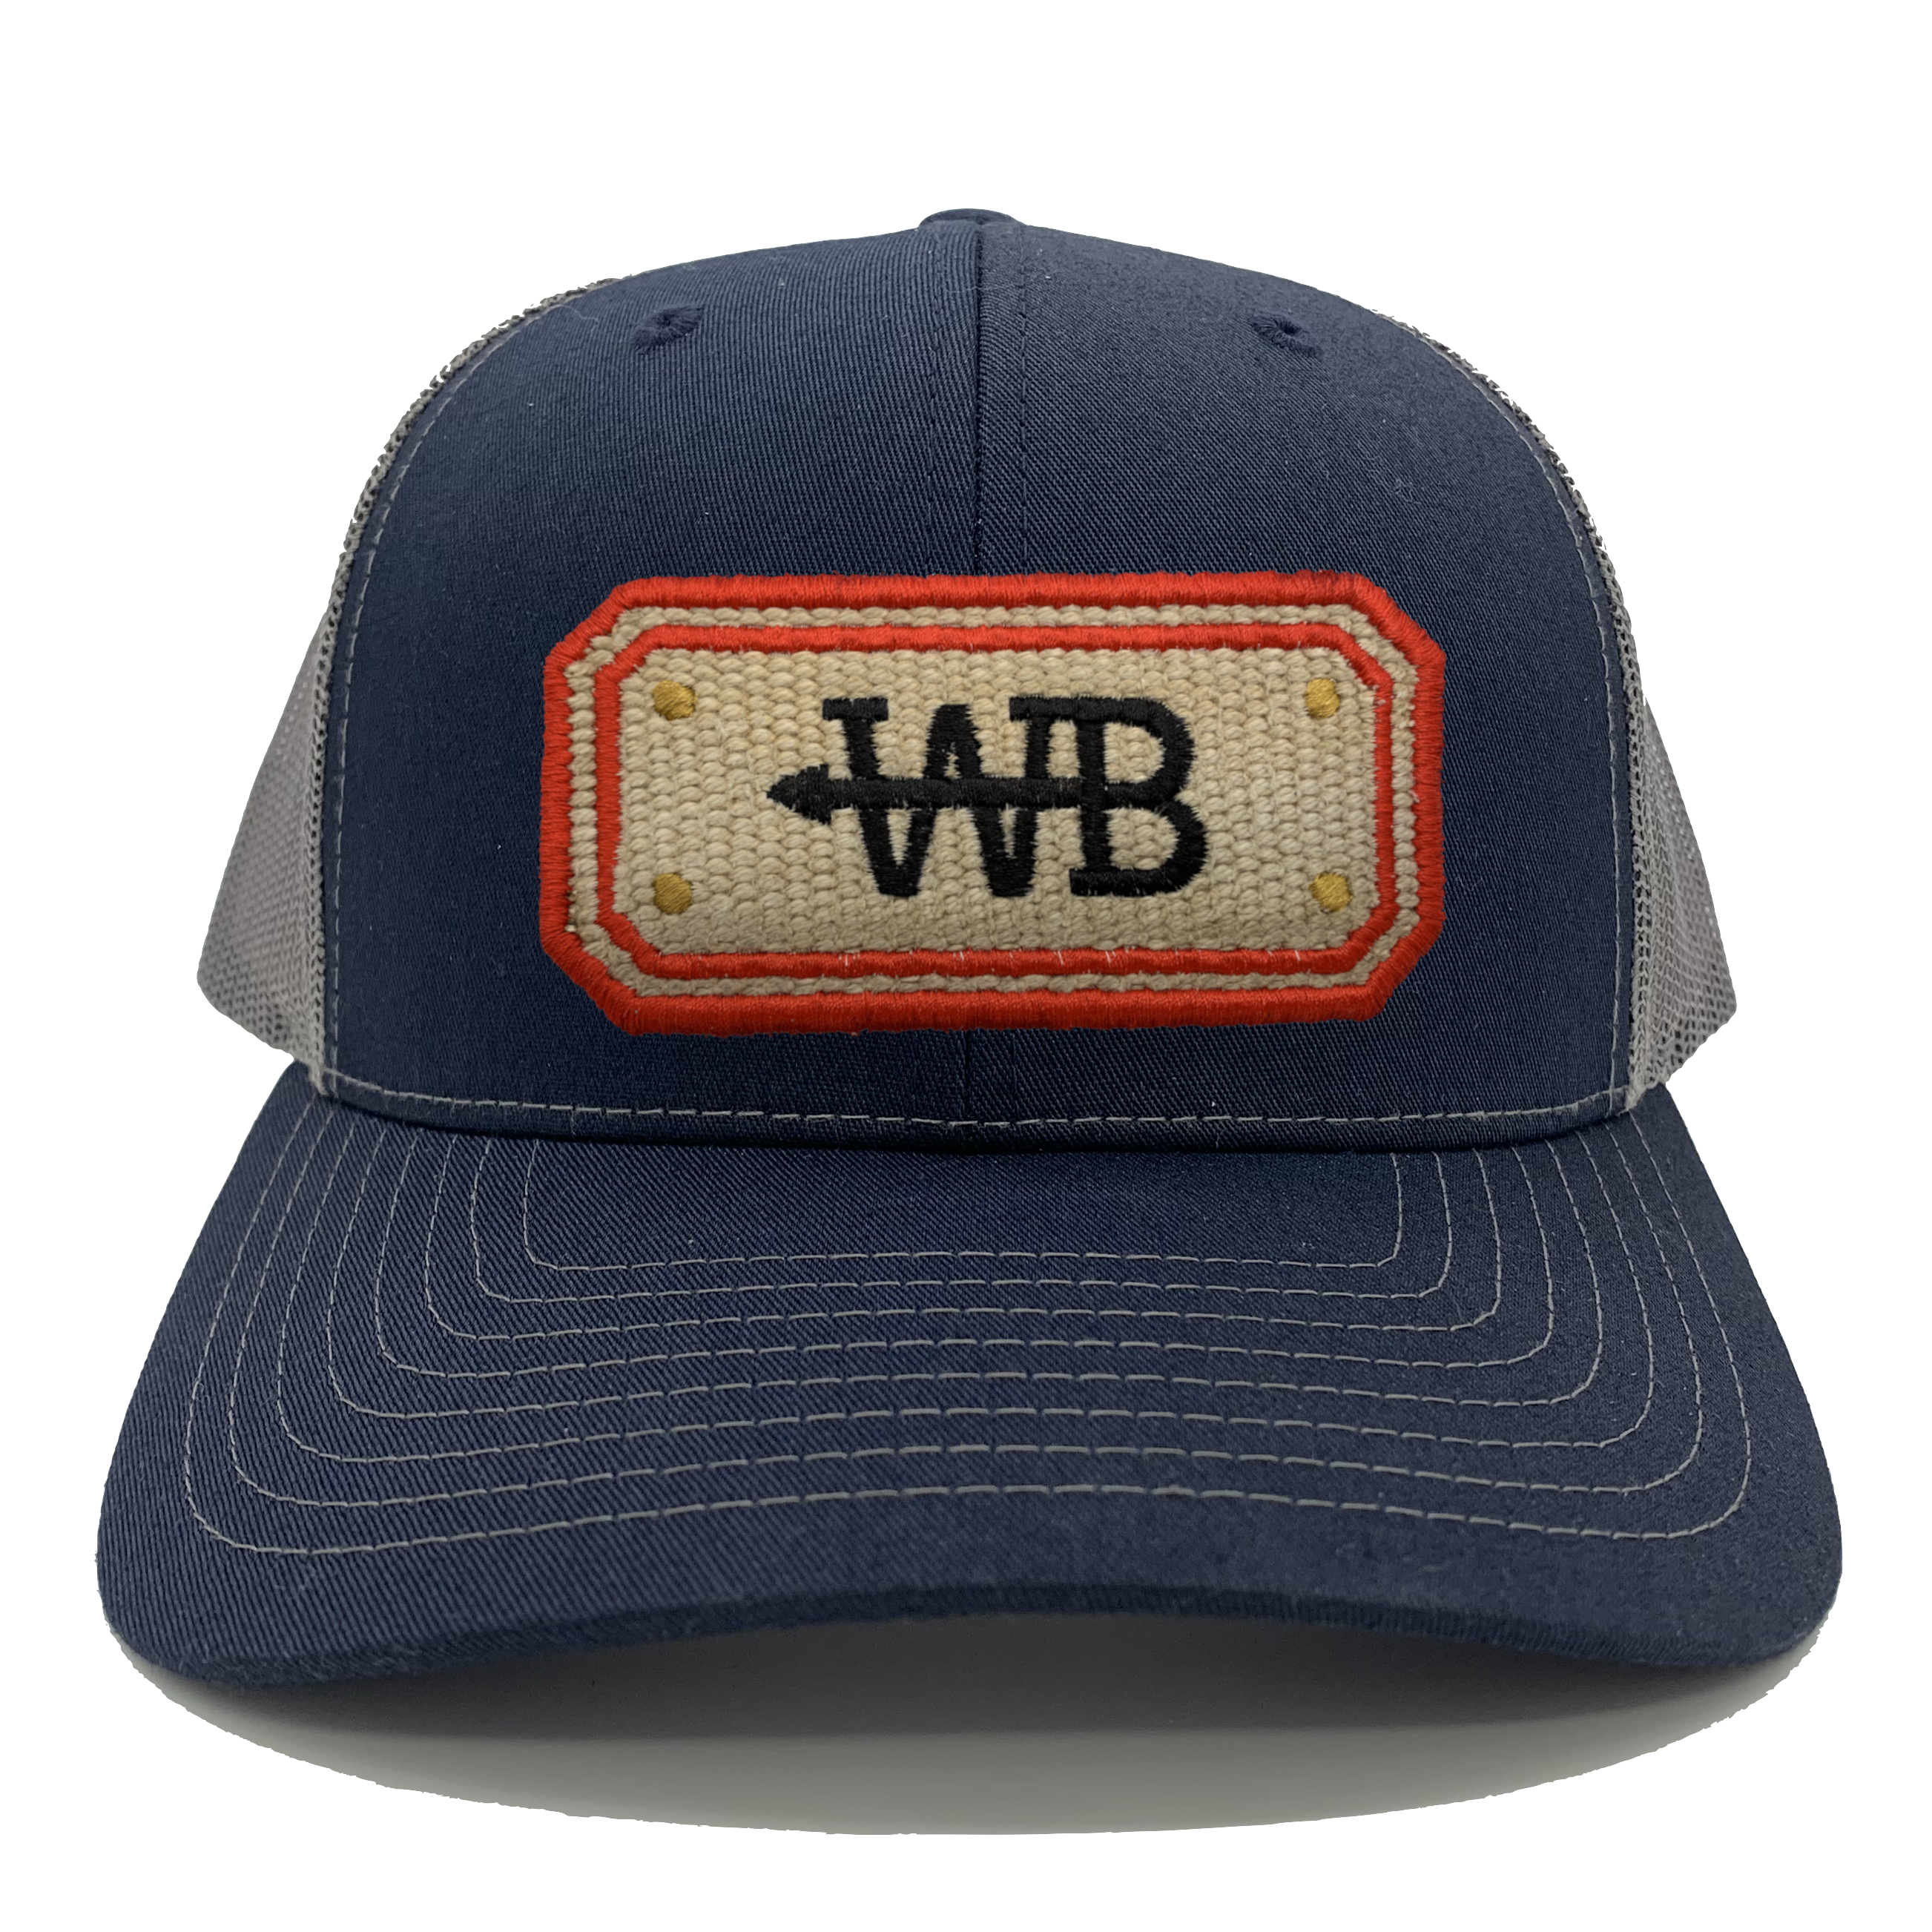 Hose Hat - Navy/Charcoal